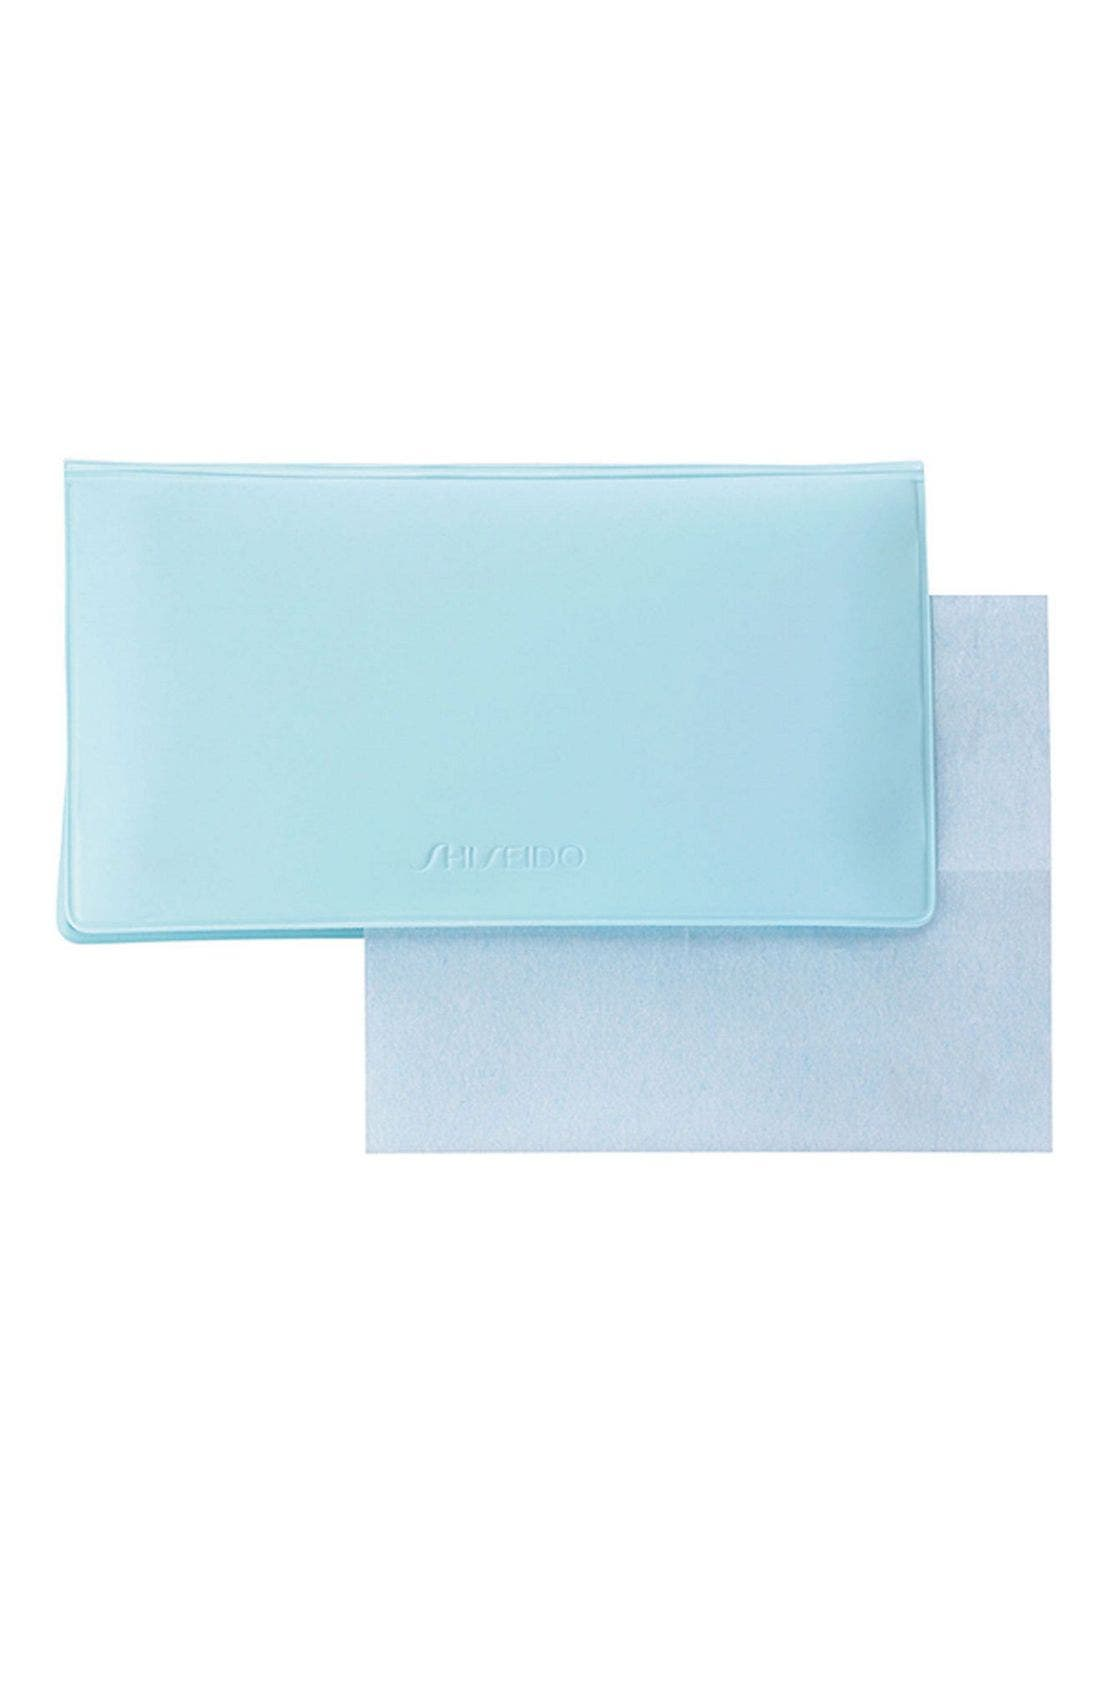 'Pureness' Oil-Control Blotting Paper,                         Main,                         color, 000